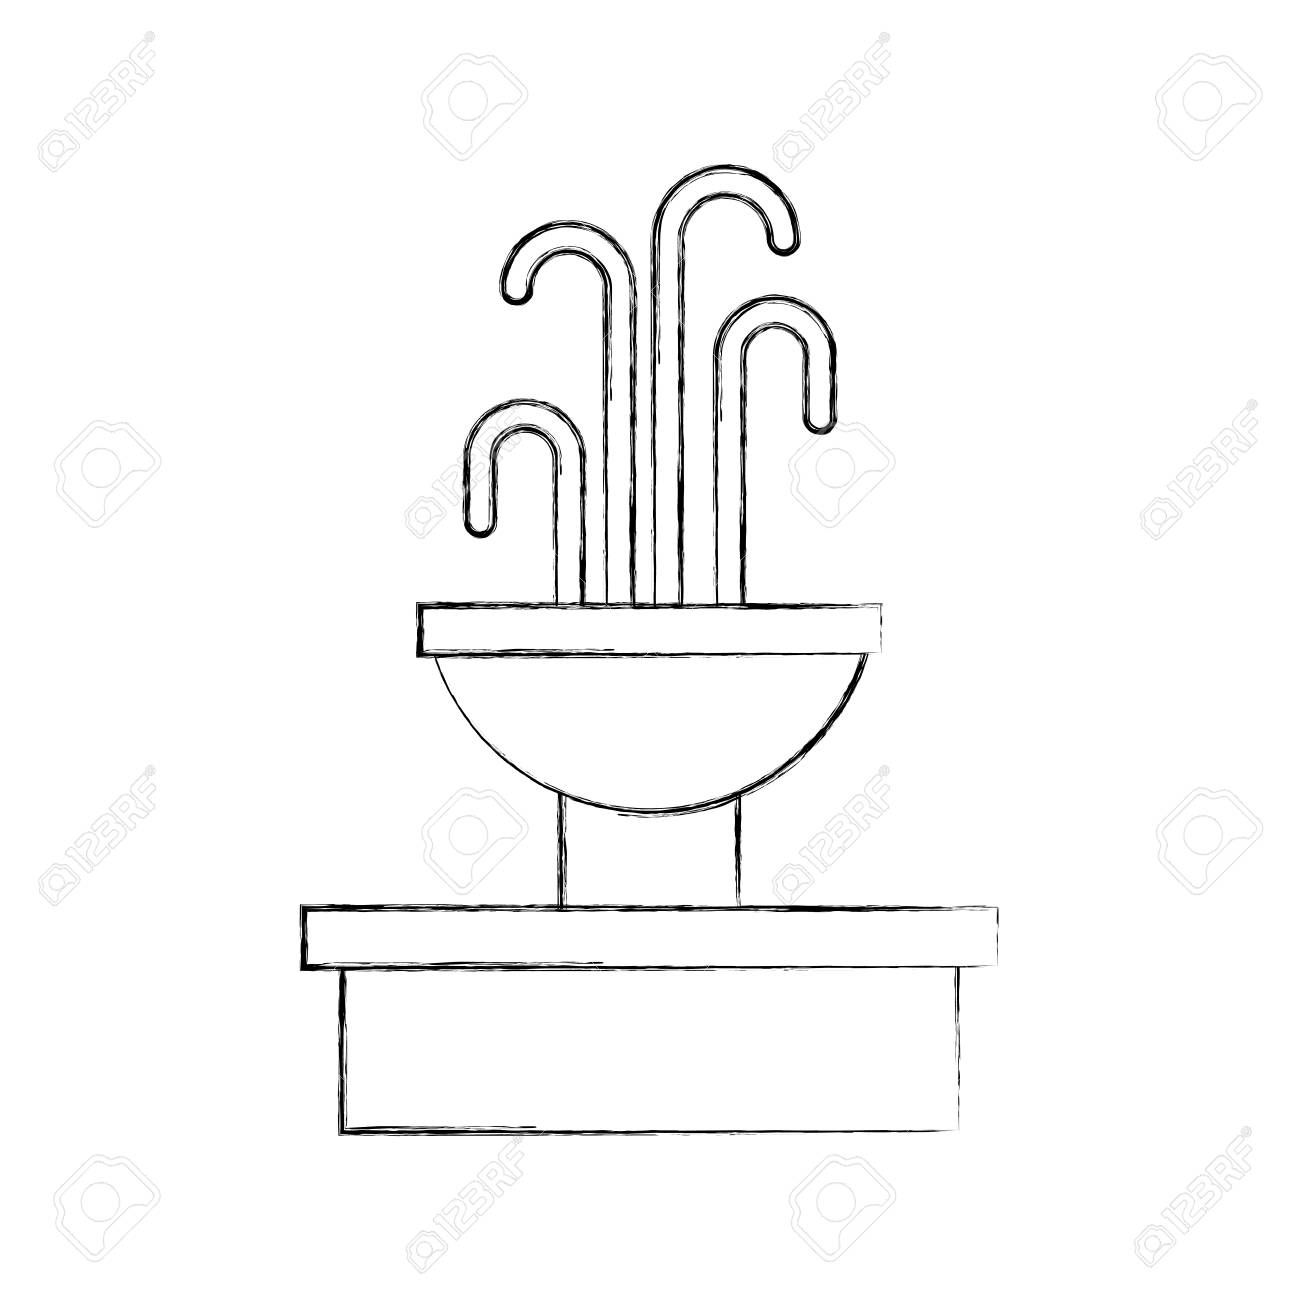 Fountain With Water Splash Element Vector Illustration Illustration Sponsored Splash Water Fountain Elem Vector Illustration Art Design Illustration